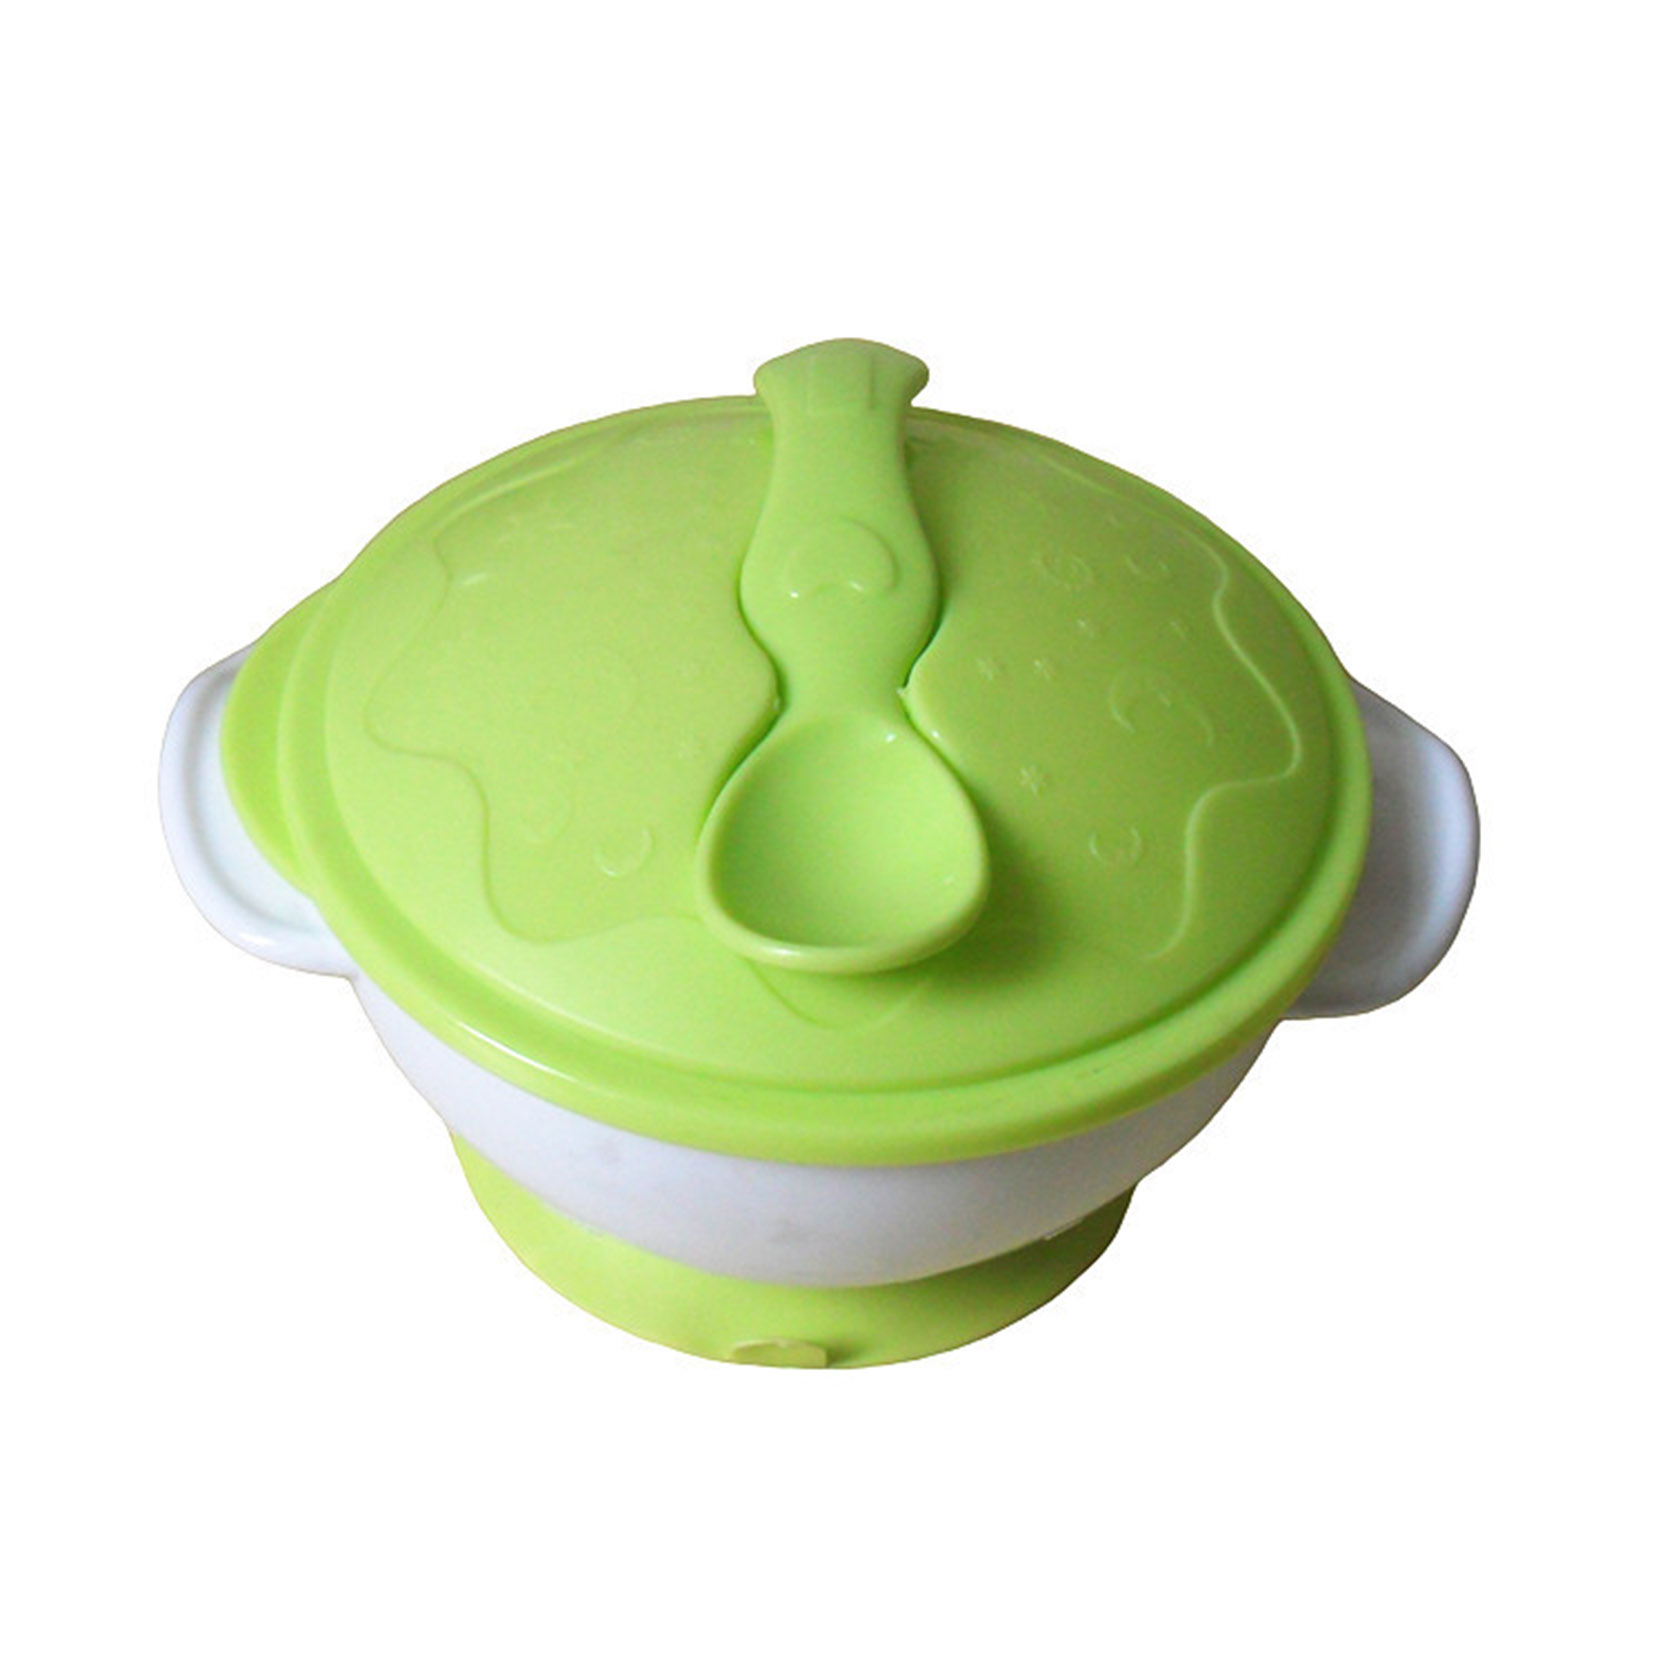 Baby Food Sucker Bowl Spoon Set Tableware Dishes Gravity Bowl Slip  Resistant Wall Suction Feeding Product